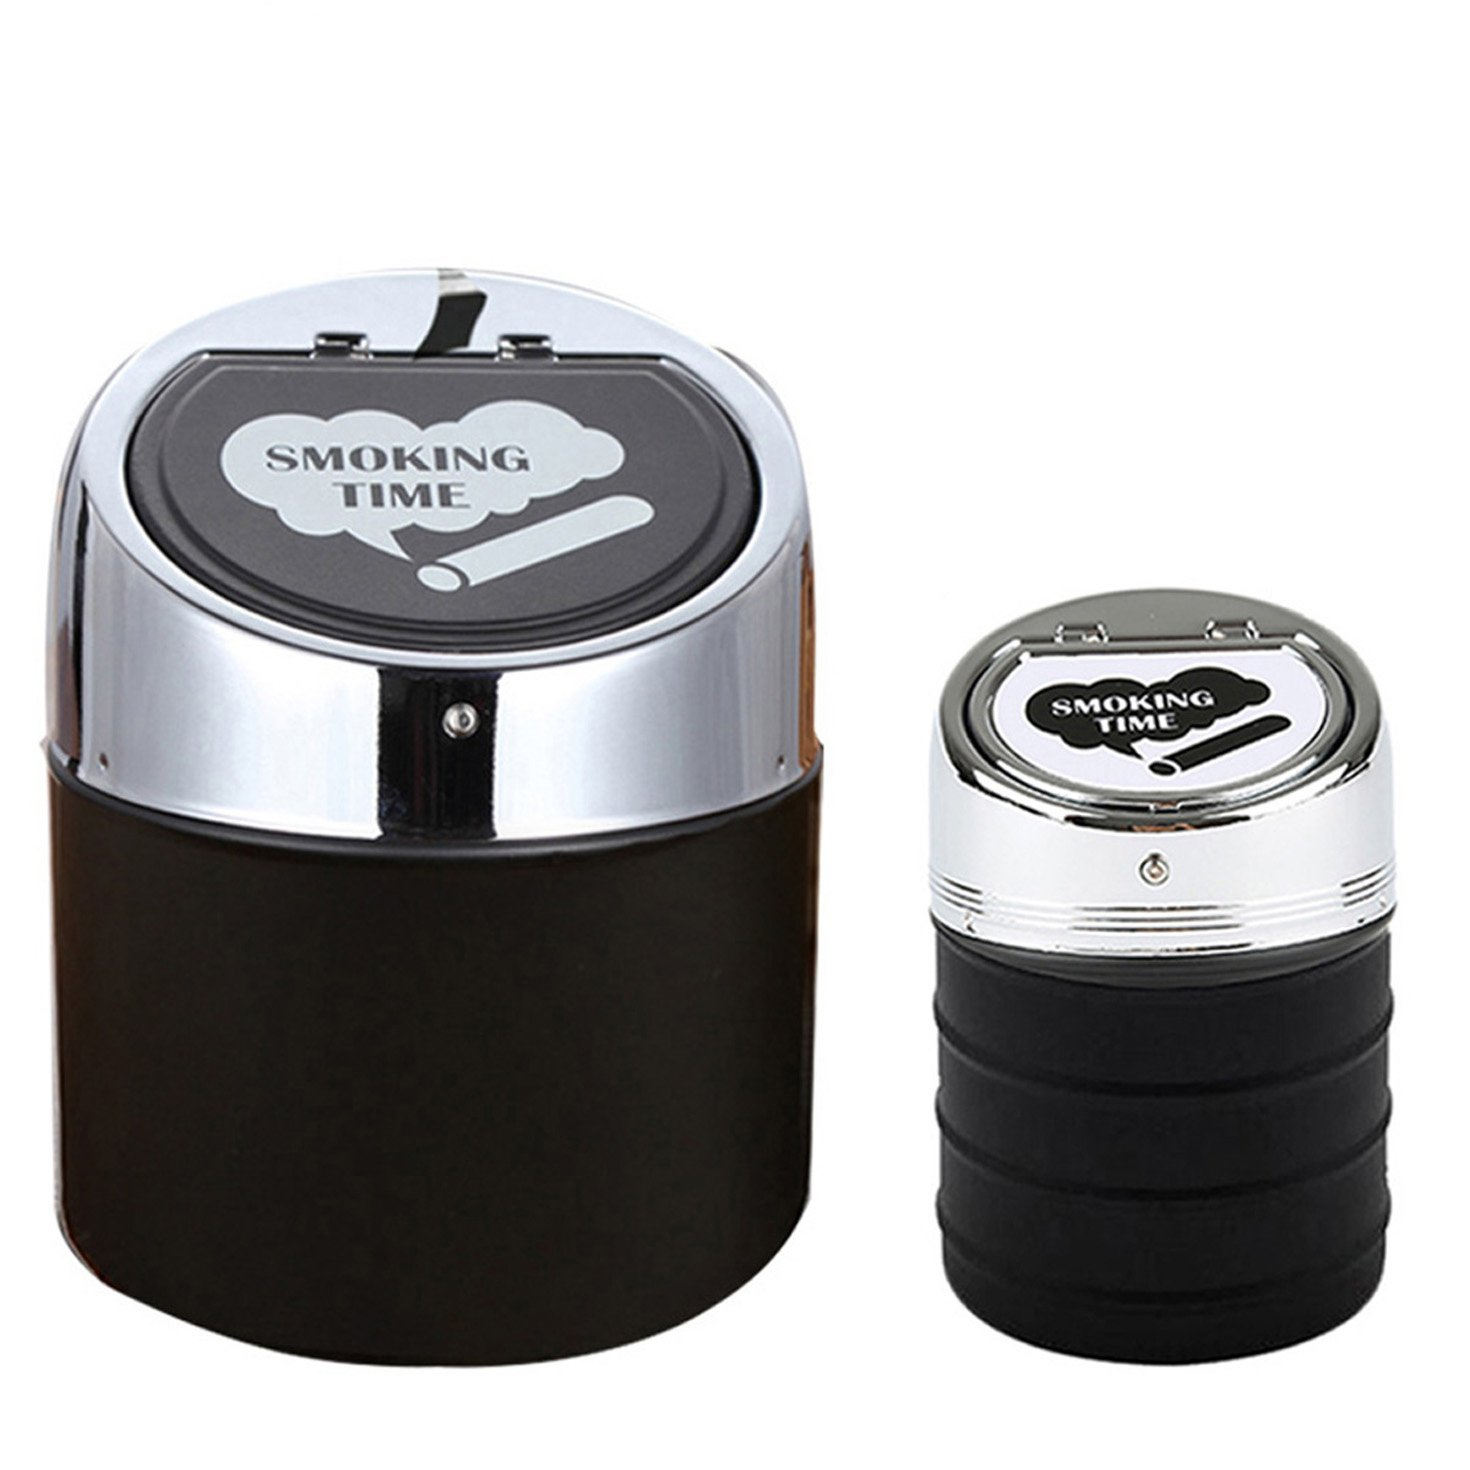 Coralpearl Smokeless Metal Steel Ashtrays for Cigarettes Cigars with Stainless Steel Lid Portable Windproof for Indoor,Outdoor,Auto,Home,Sand,Car,Patio (Smoking time Big+Small)